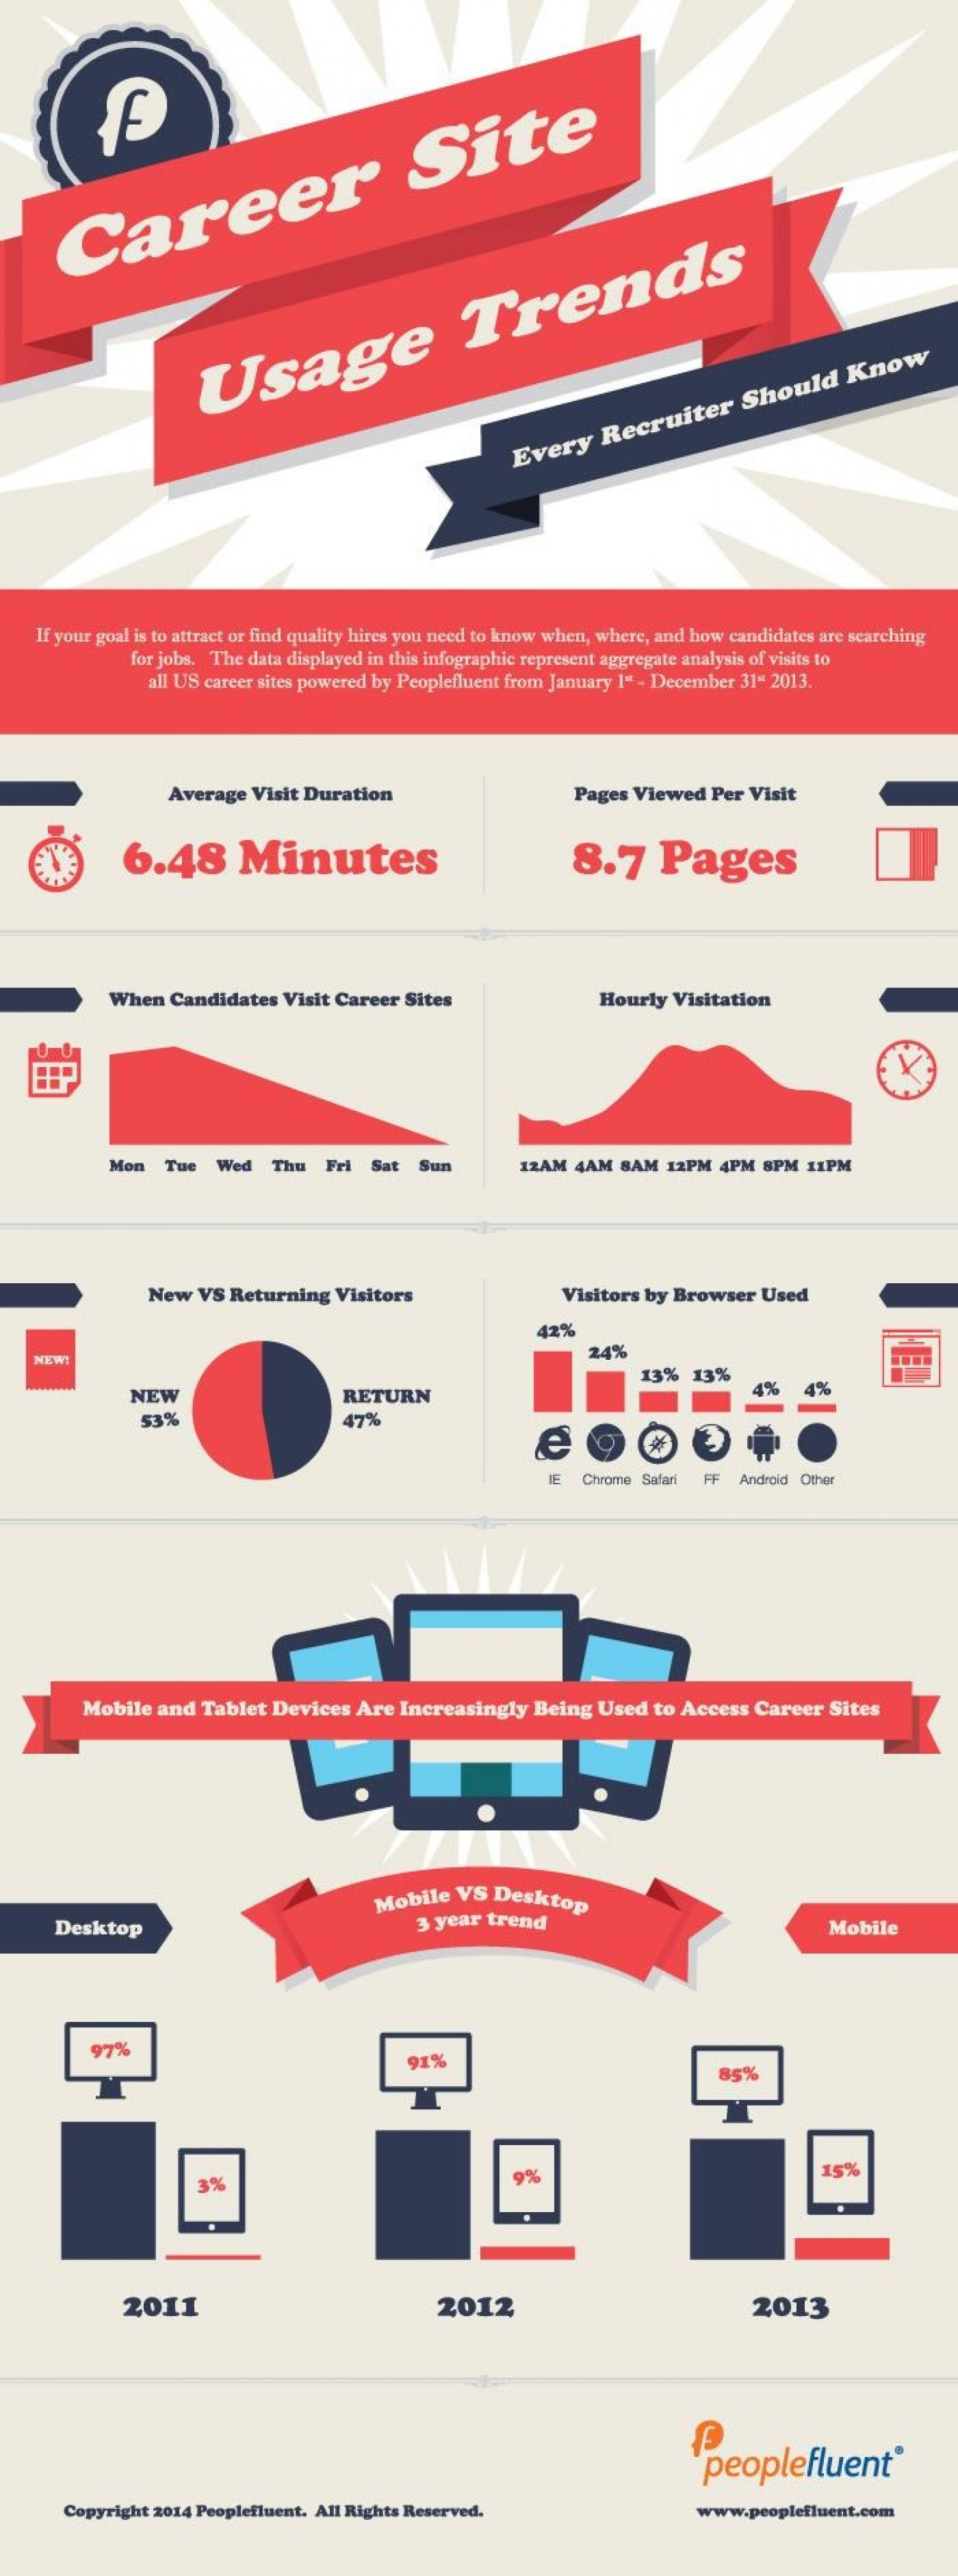 7 Career Site Usage Trends Every Recruiter Should Know Infographic